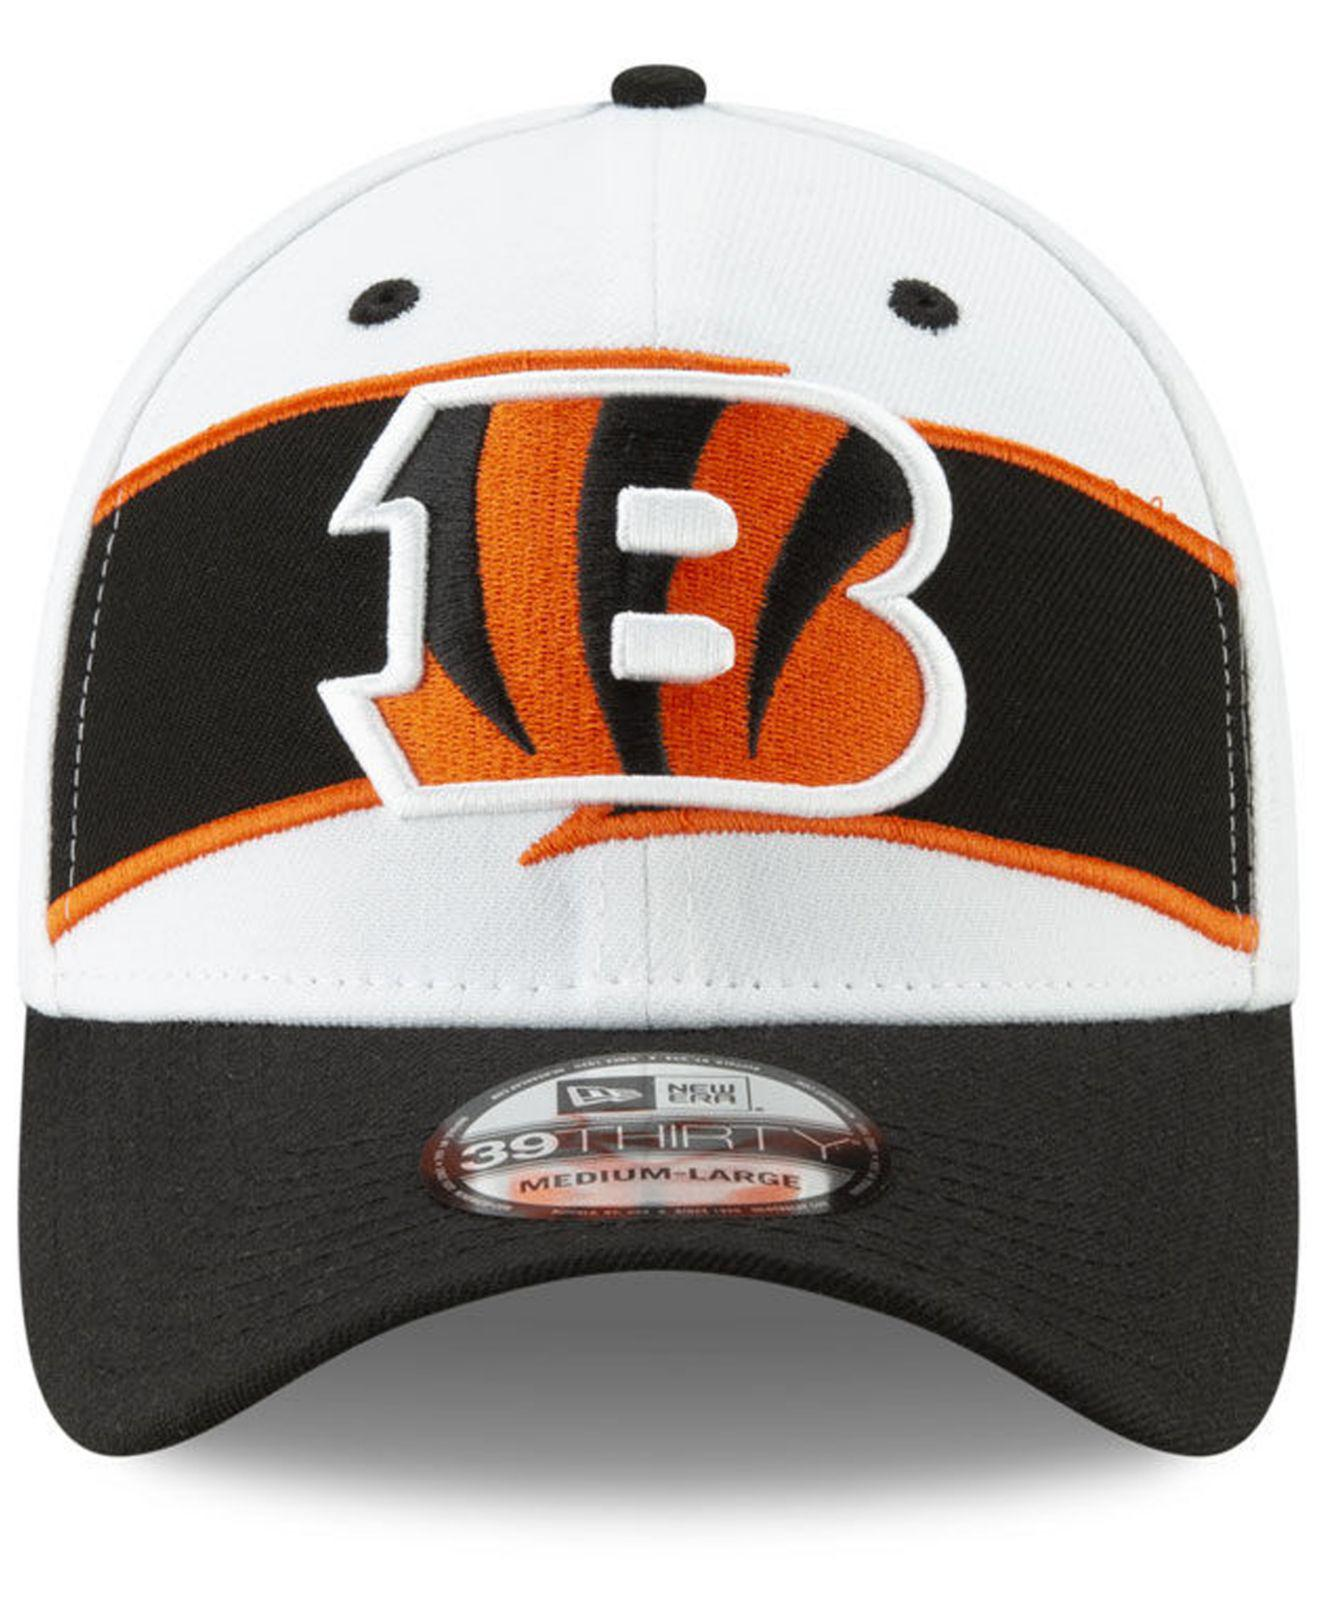 Lyst - Ktz Cincinnati Bengals Thanksgiving 39thirty Cap in Black for Men 41a37e1fd374